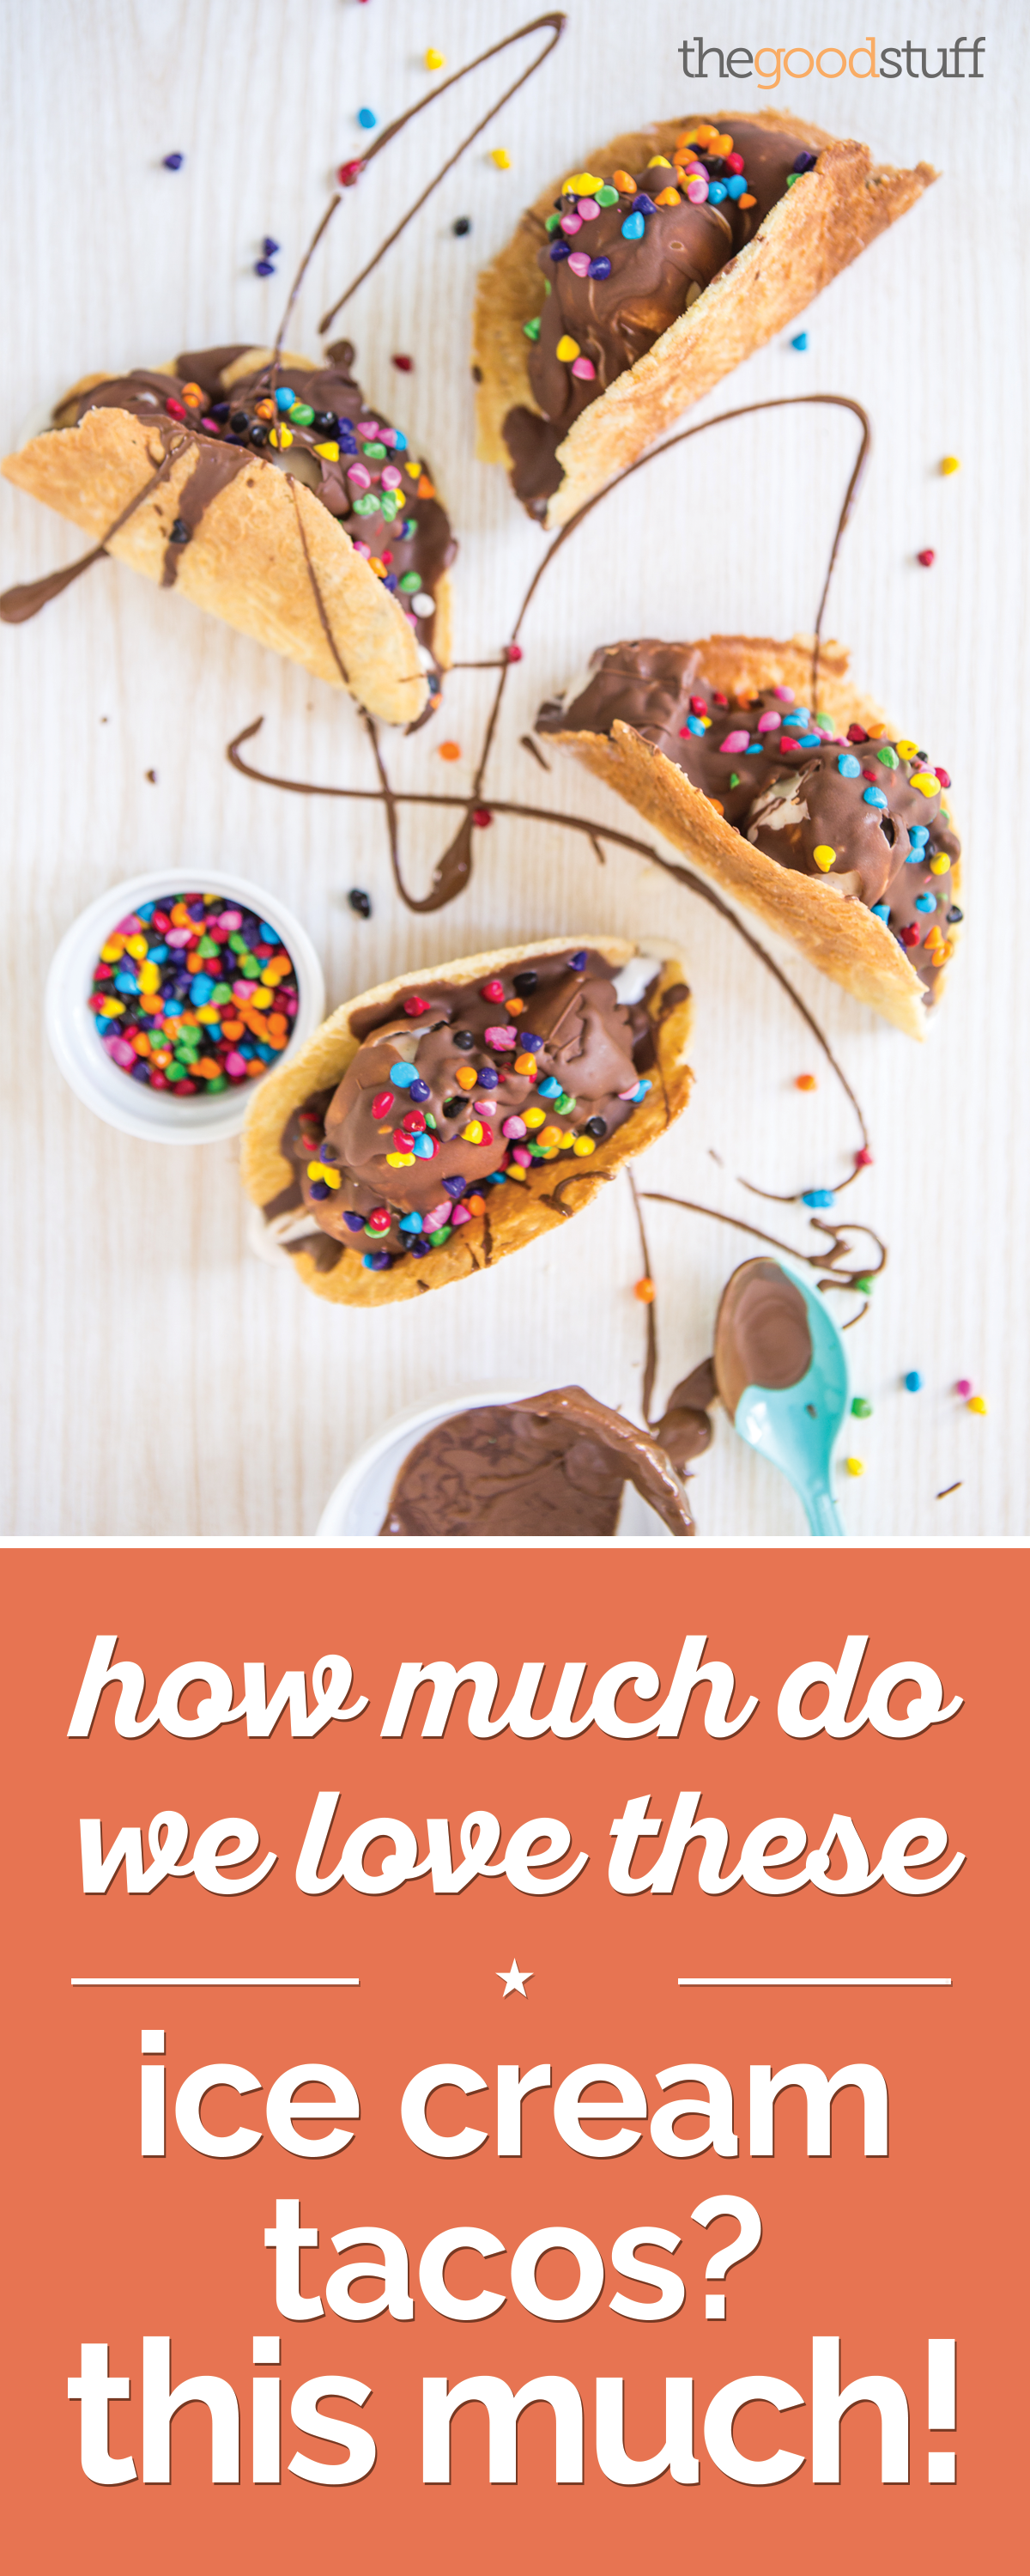 How Much Do We Love These Ice Cream Tacos? This Much! | thegoodstuff